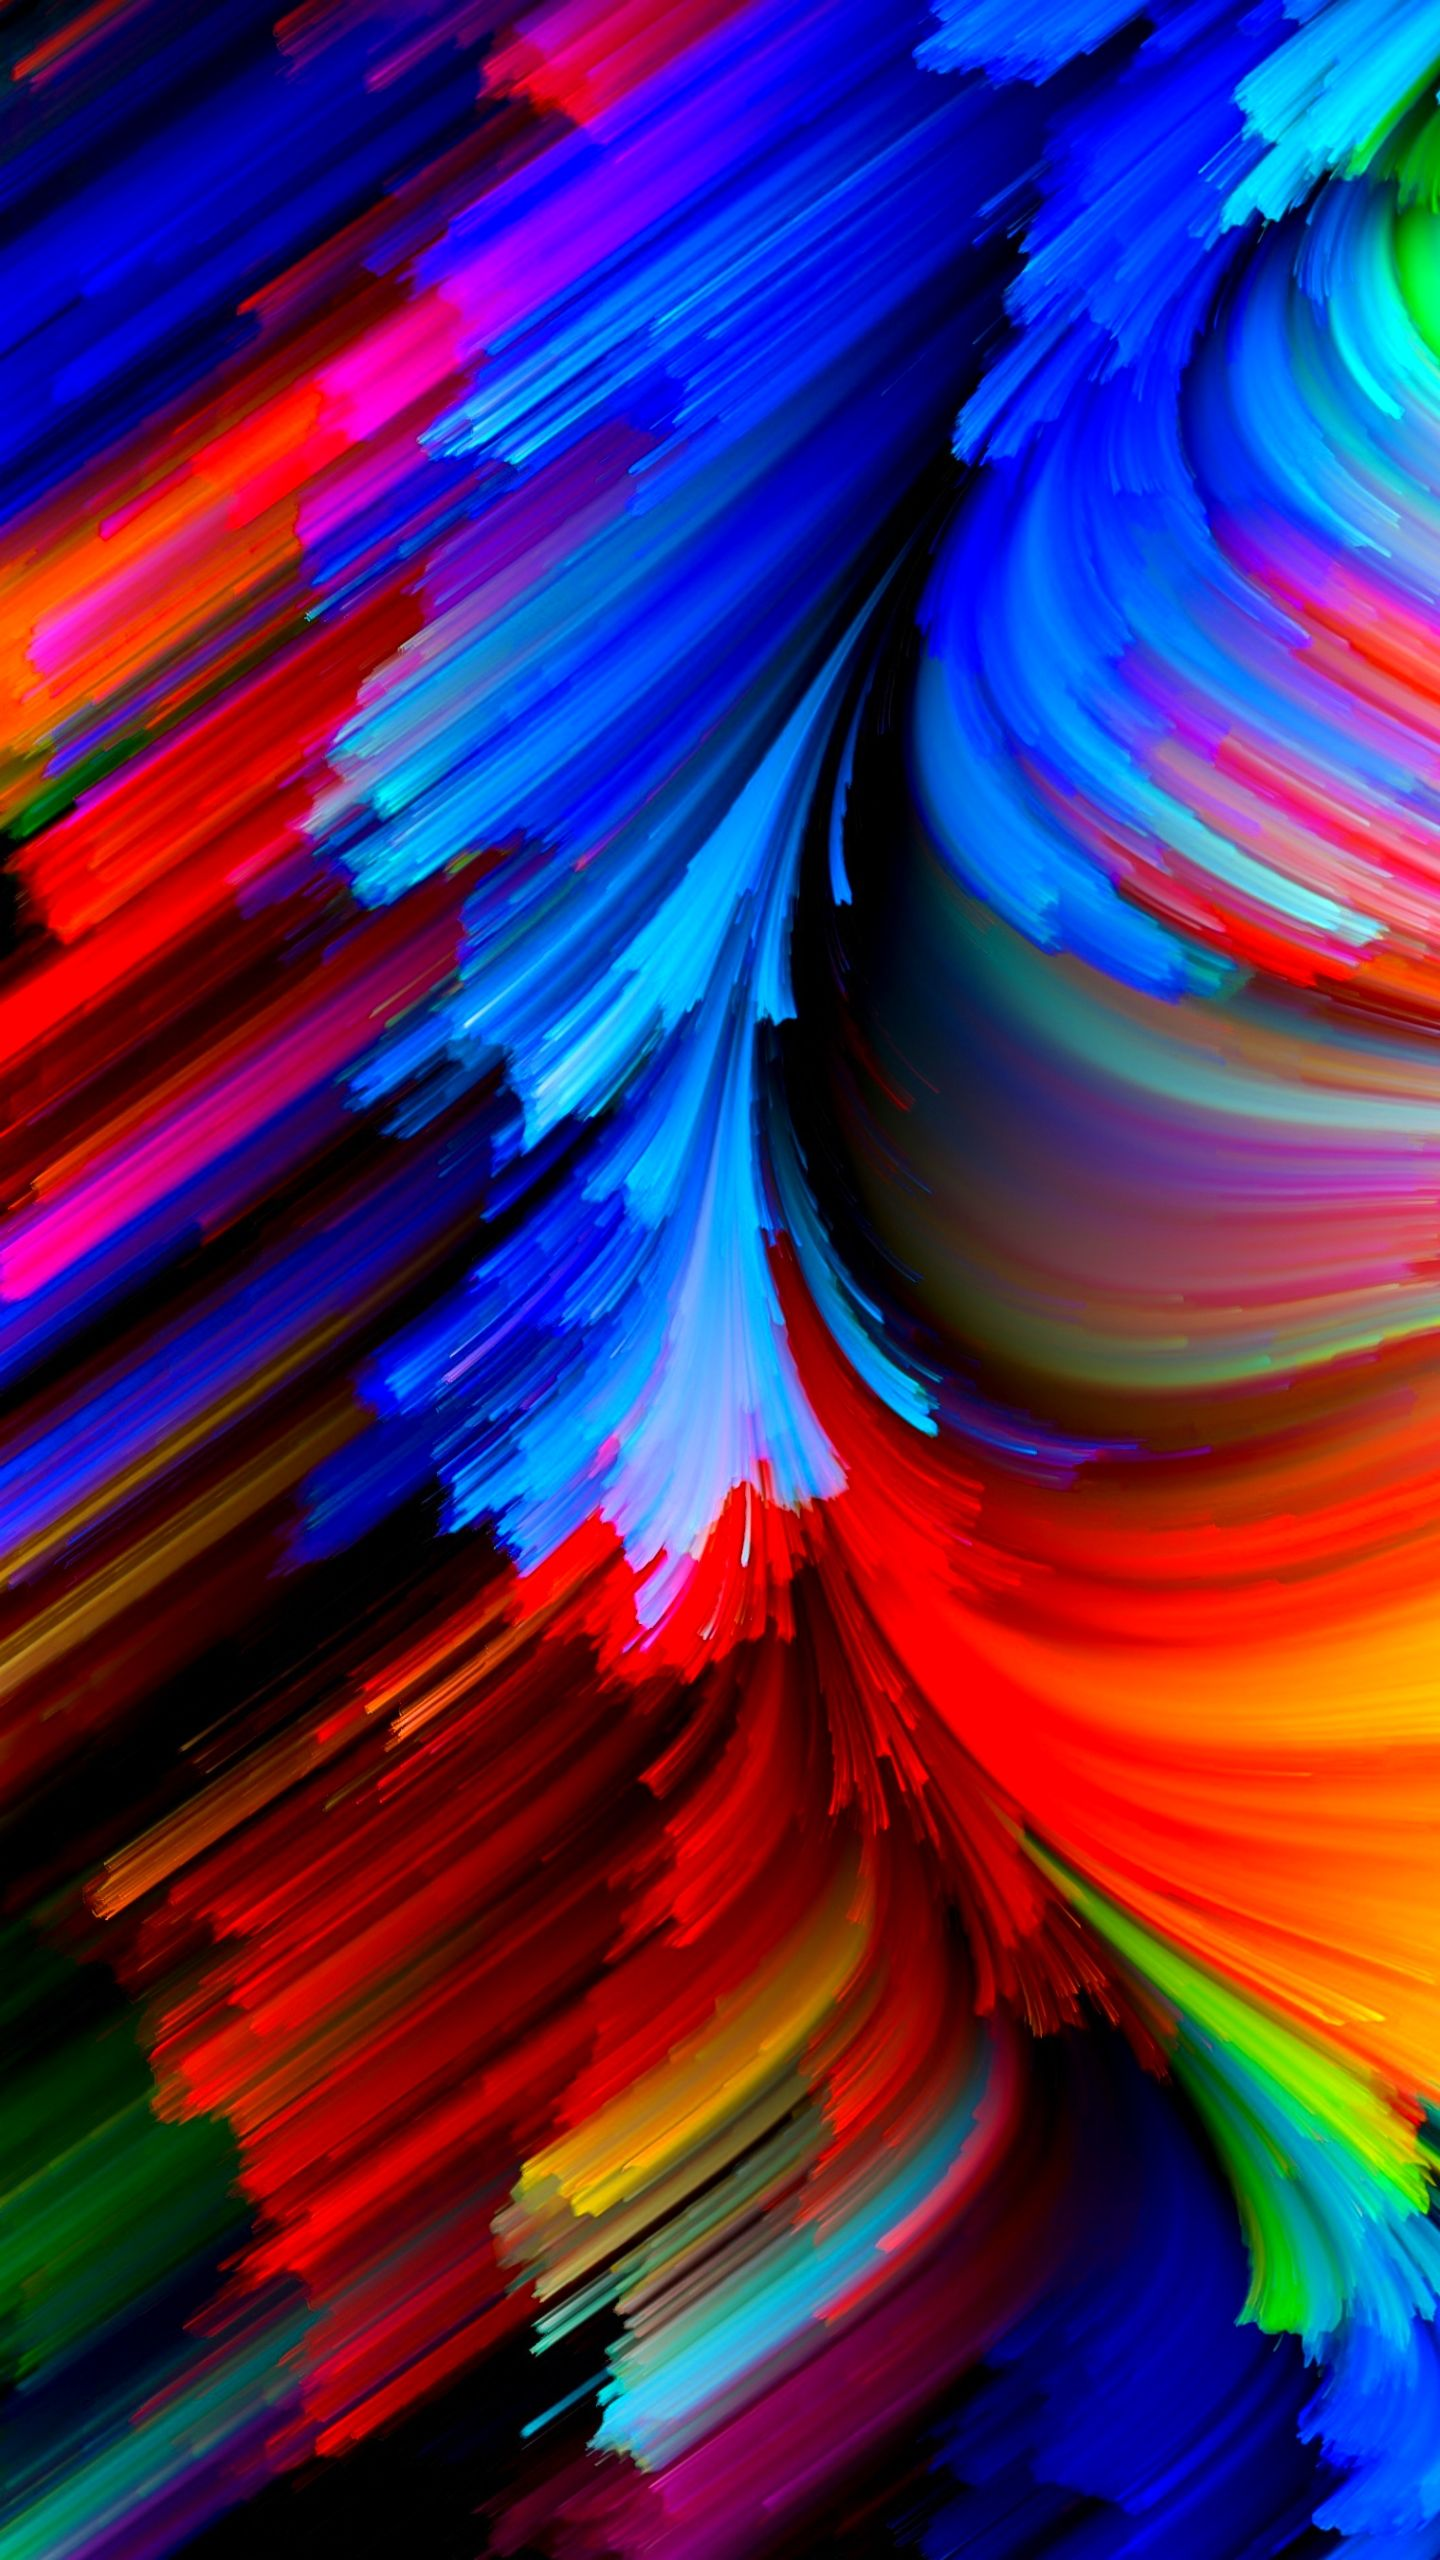 Pin by Steven Zitar on Abstracts Abstract, Colorful